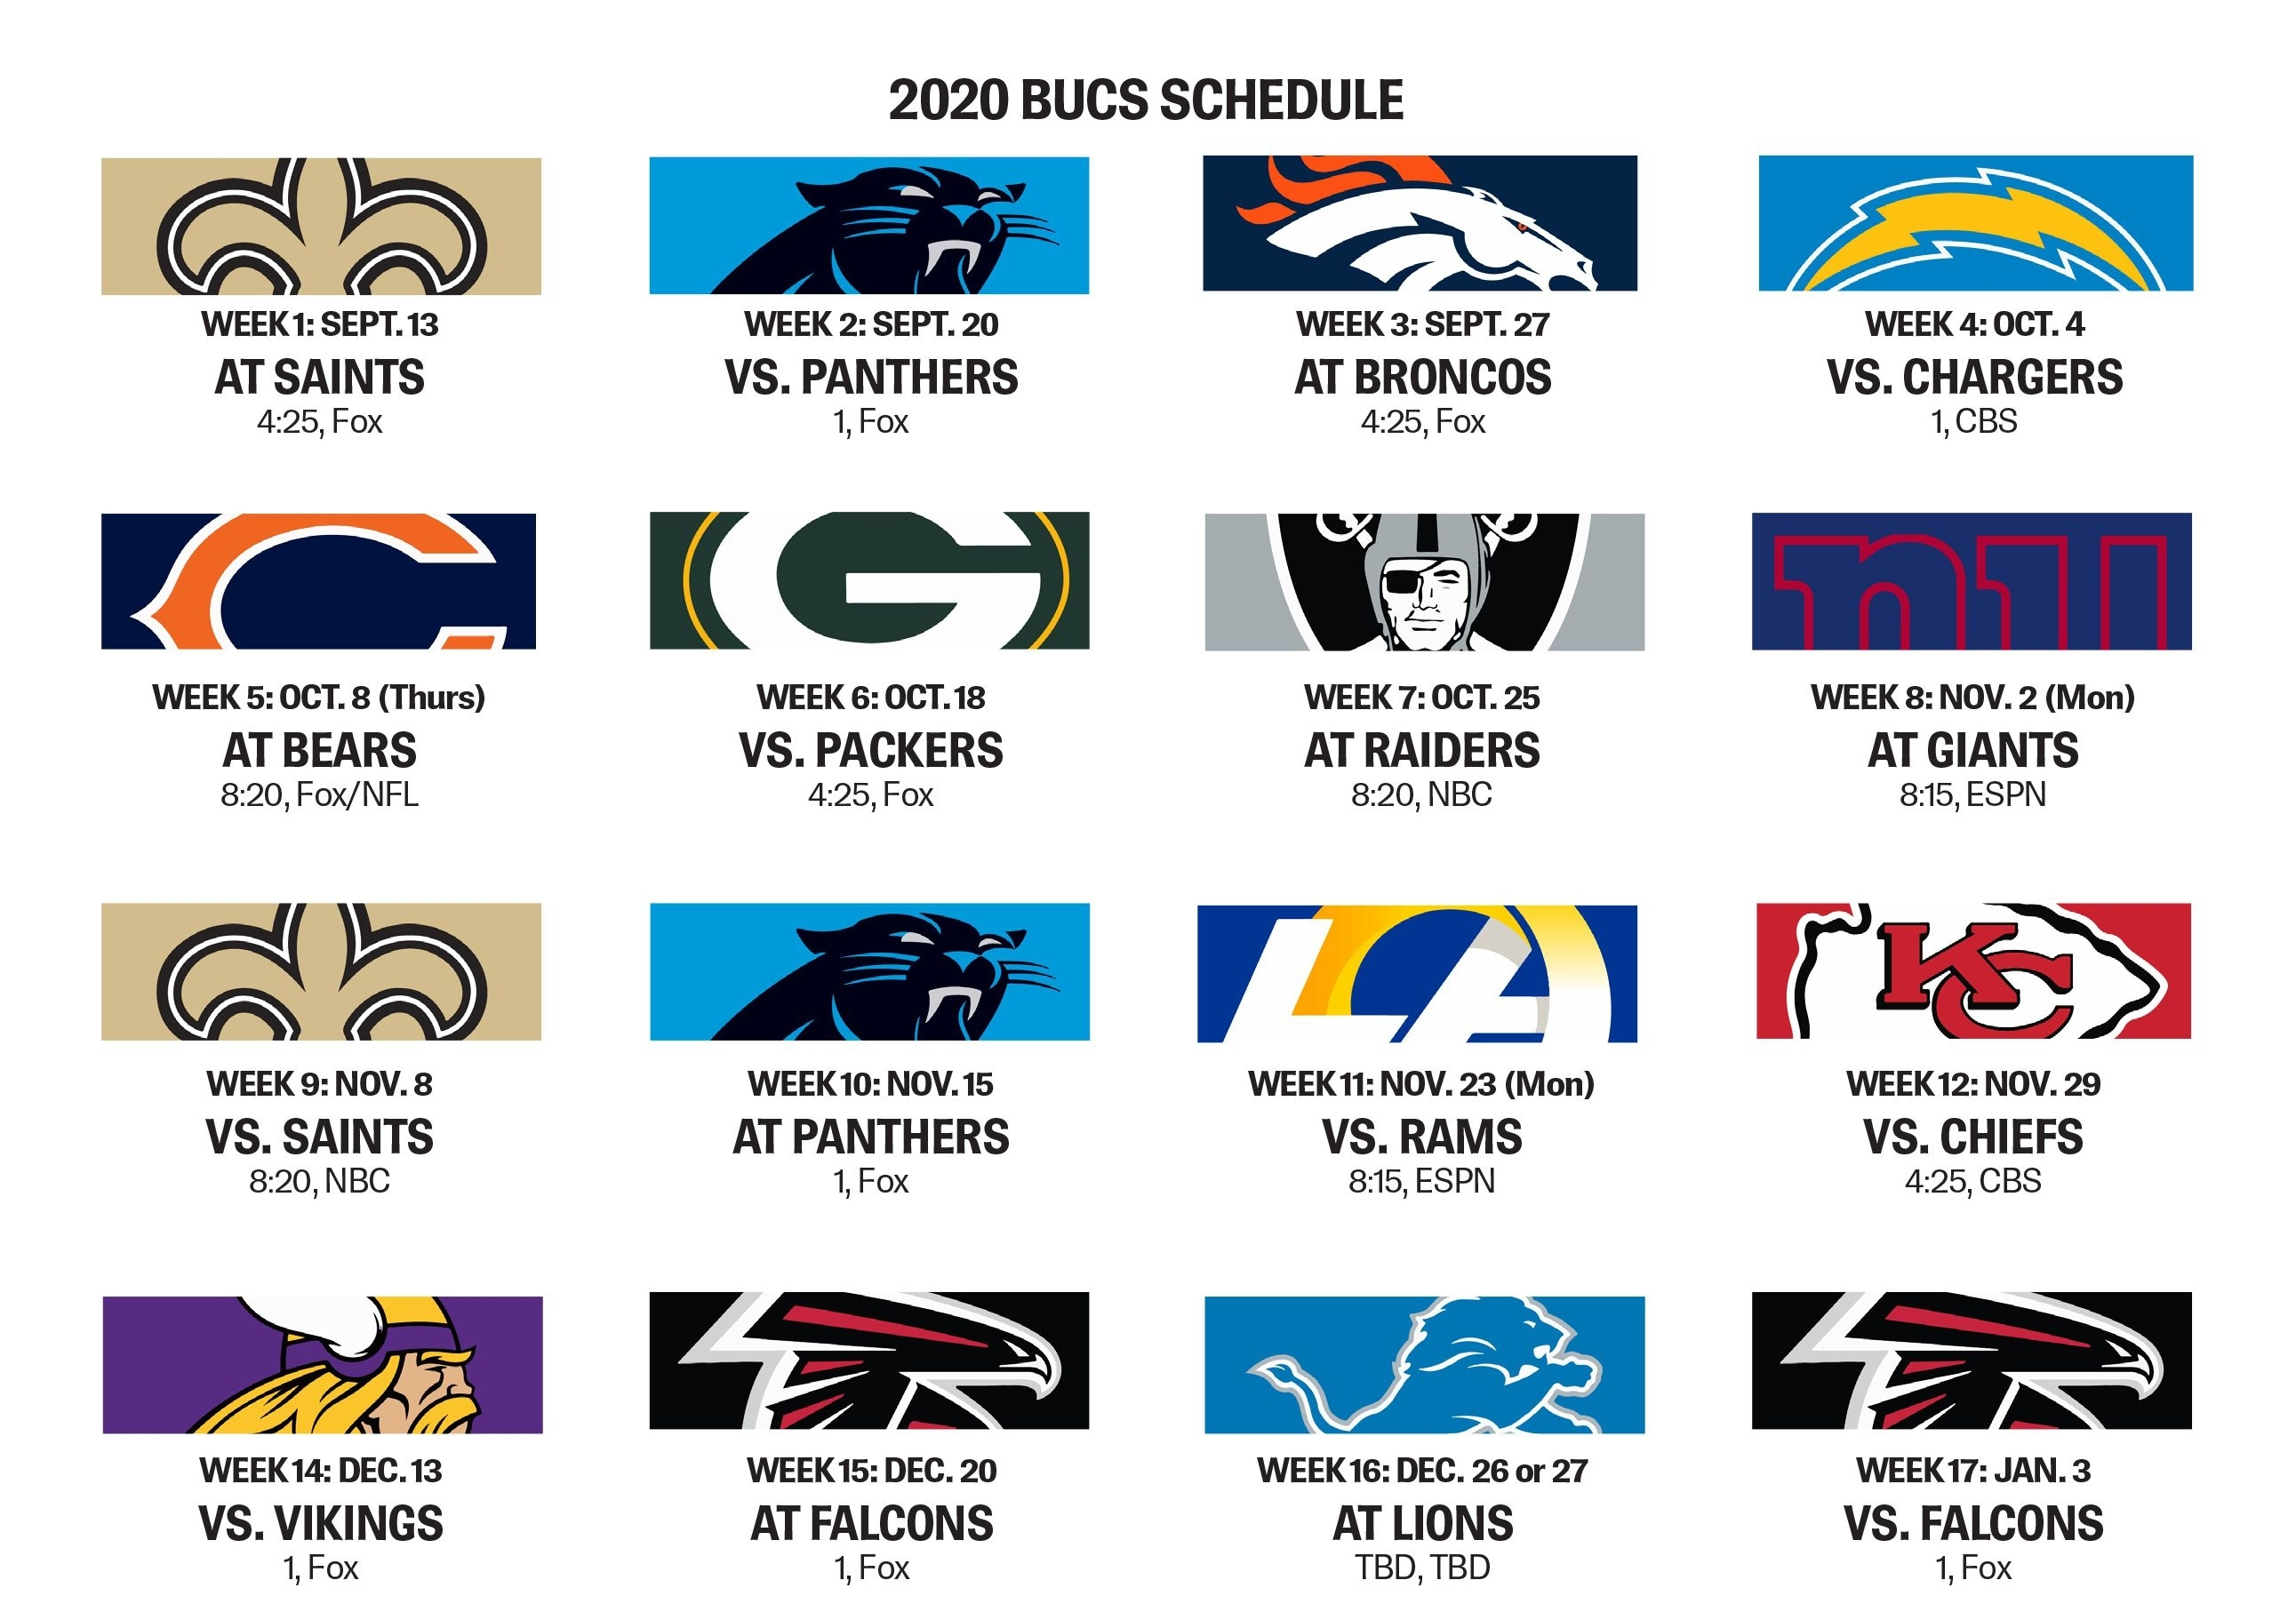 Bucs Open With Saints, Have Five Prime-Time Games Slated with regard to Free Printable Nfl Schedule 2019 2020